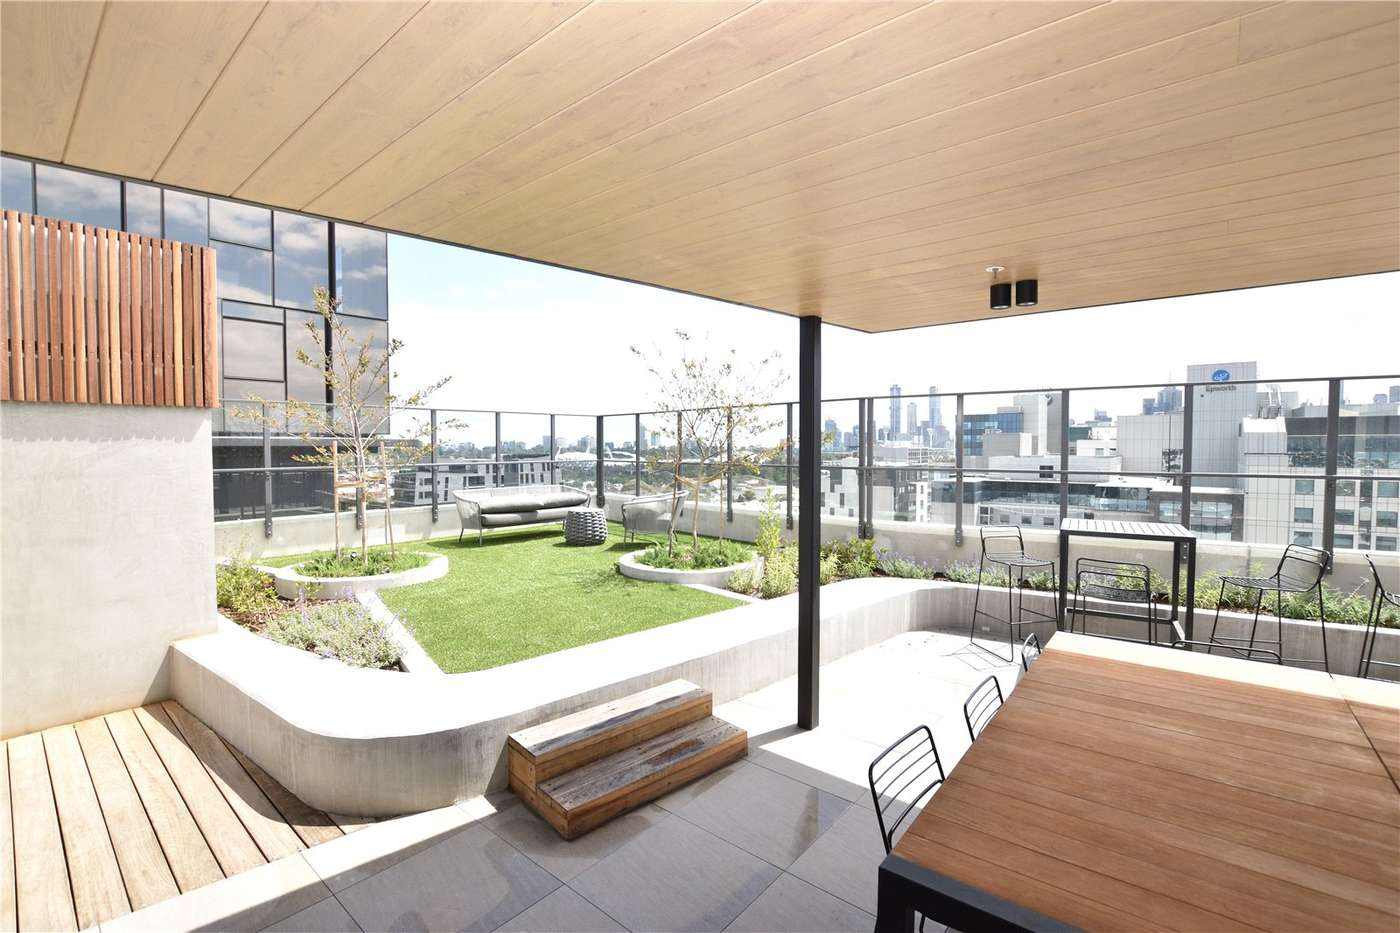 Main view of Homely apartment listing, 204/19-21 Judd Street, Richmond, VIC 3121